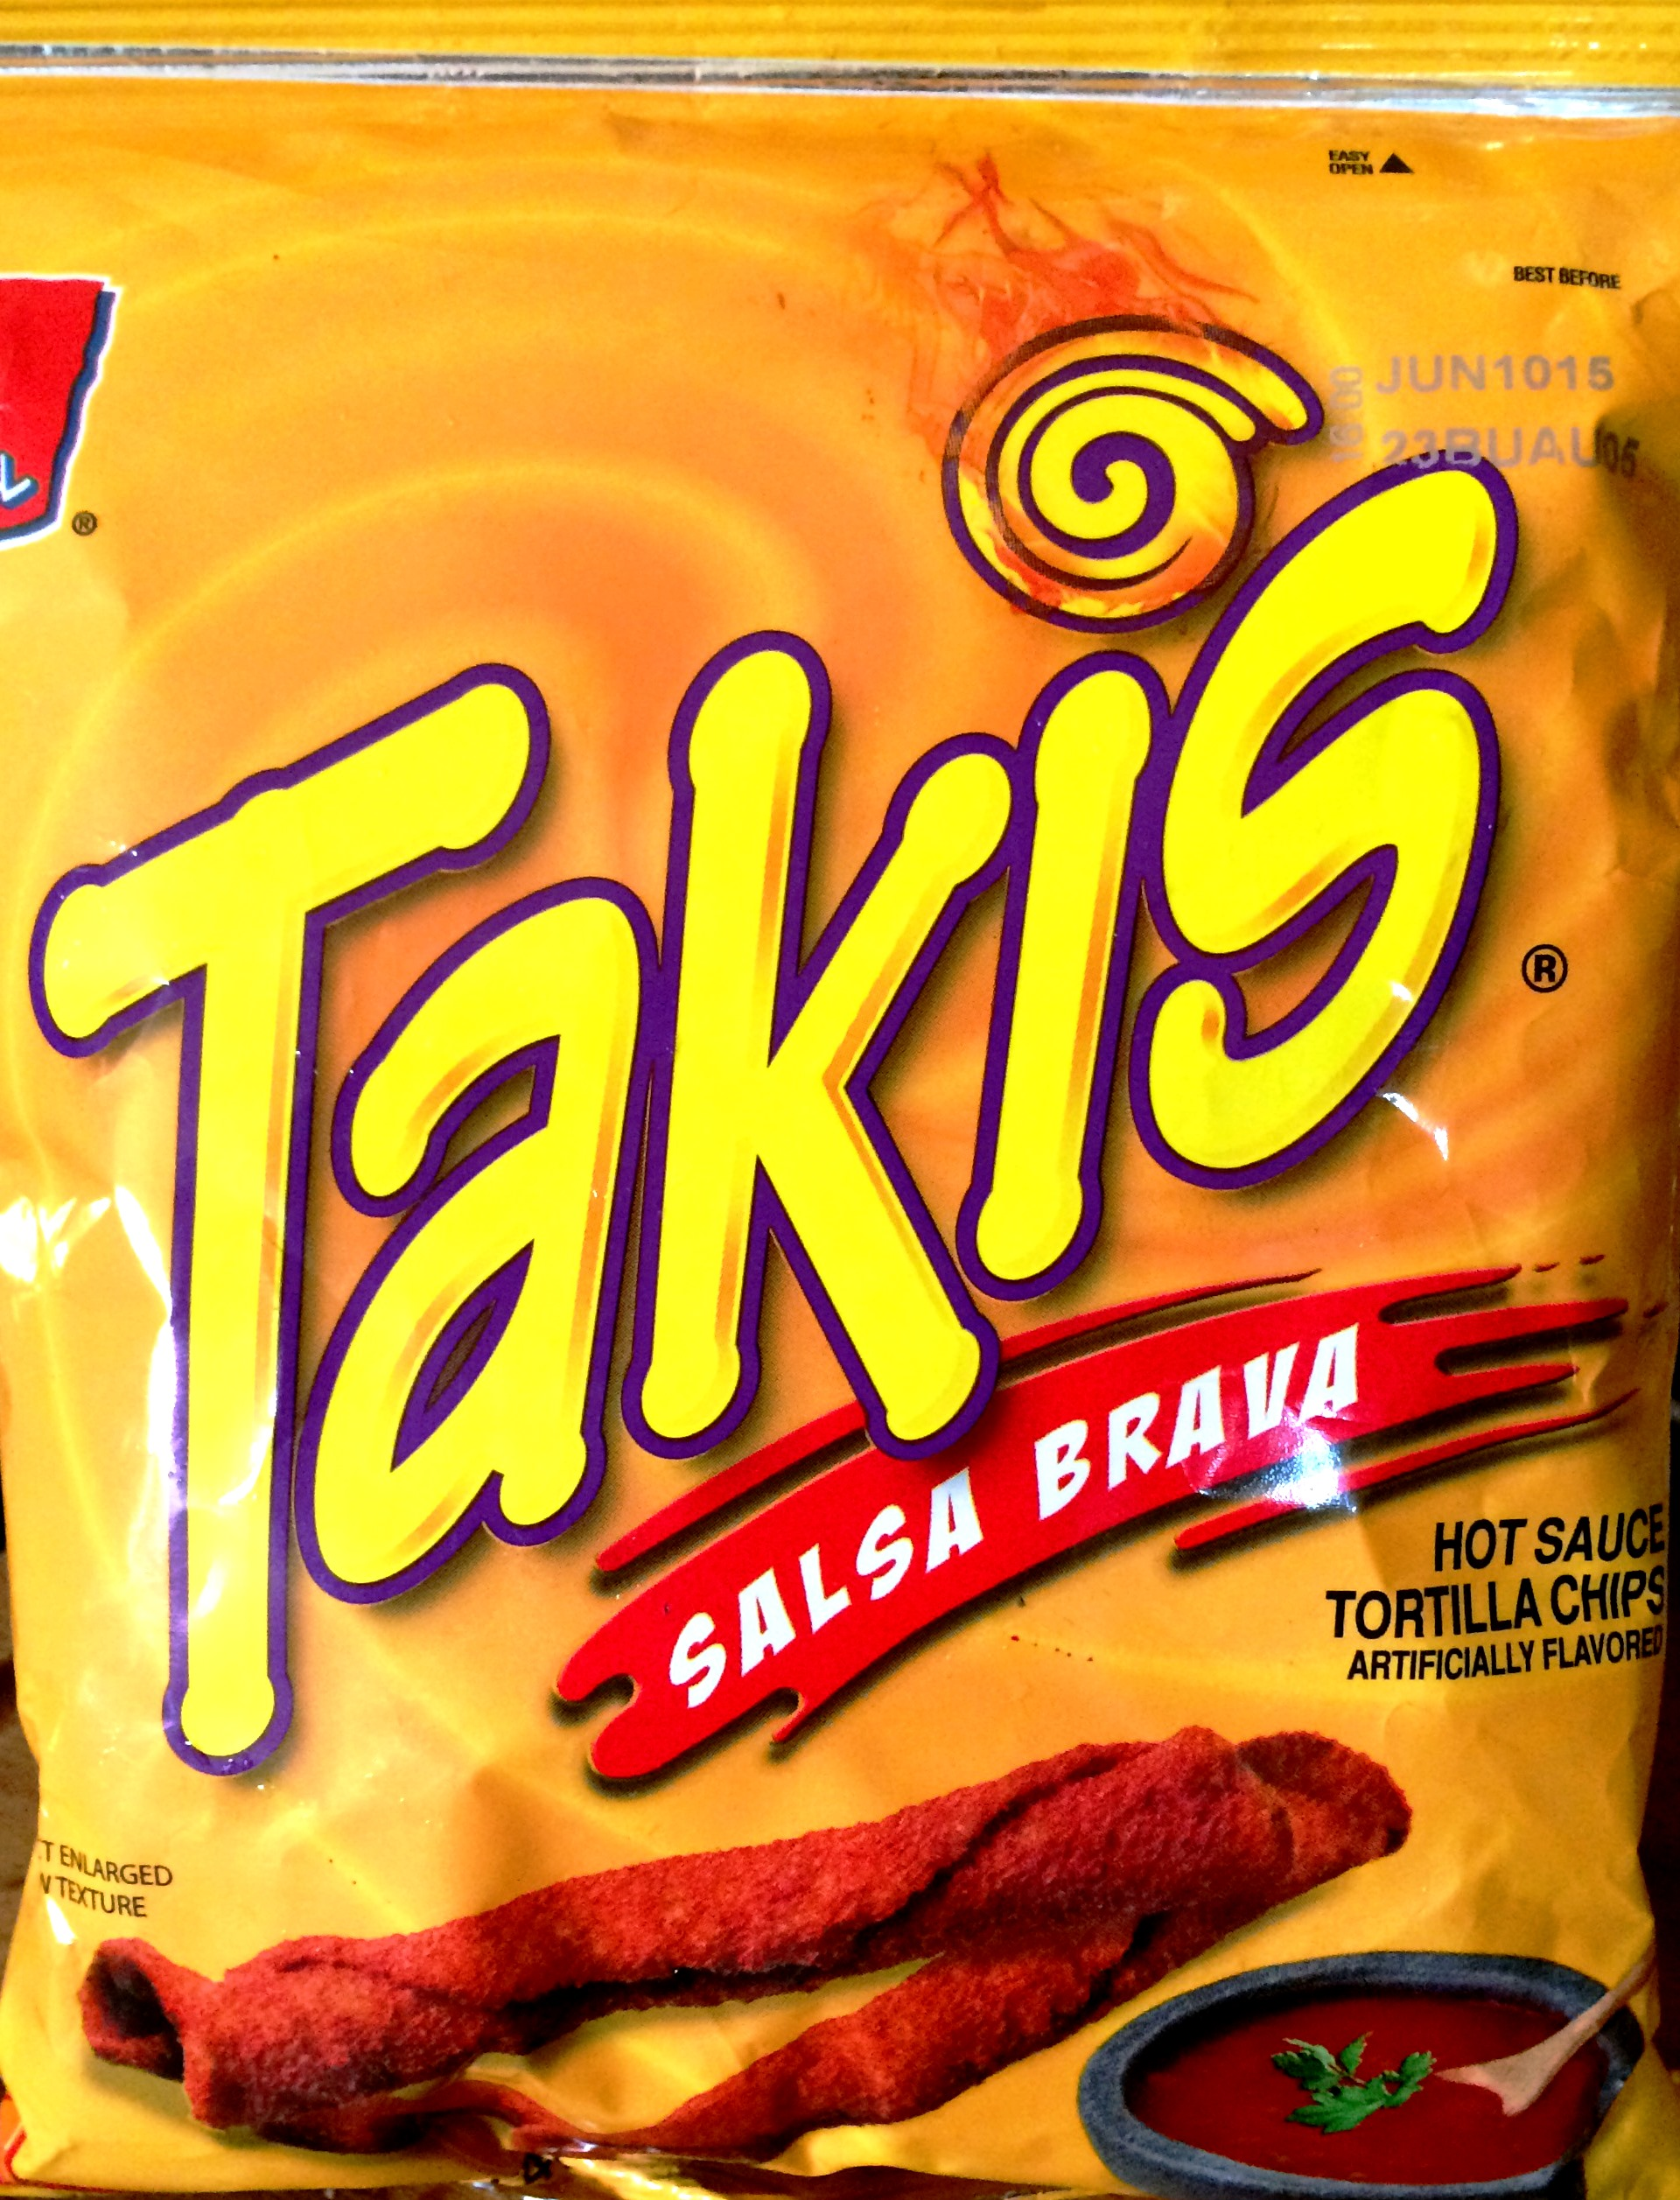 Takis Chip Review